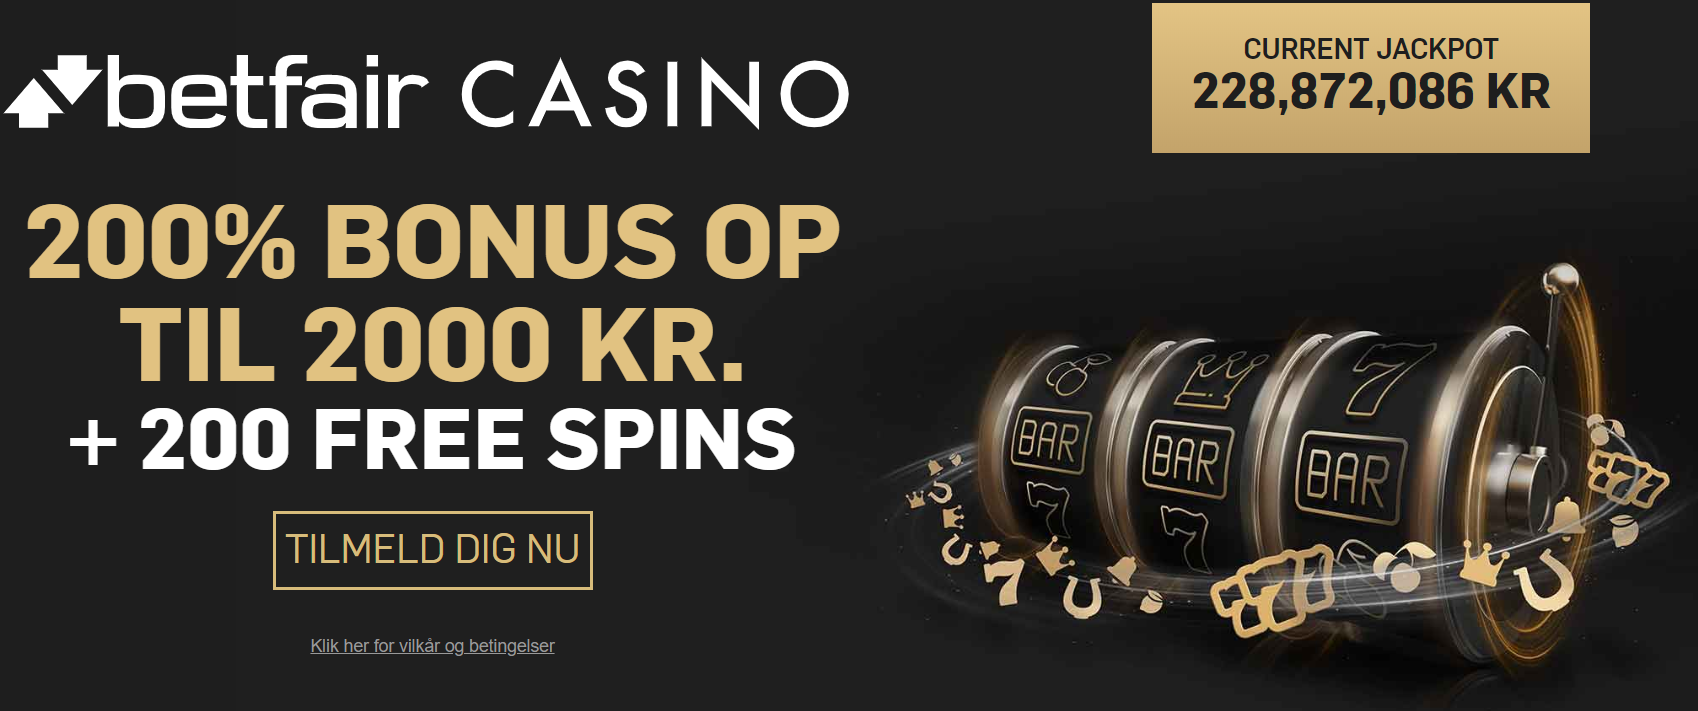 Best payout gambling sites